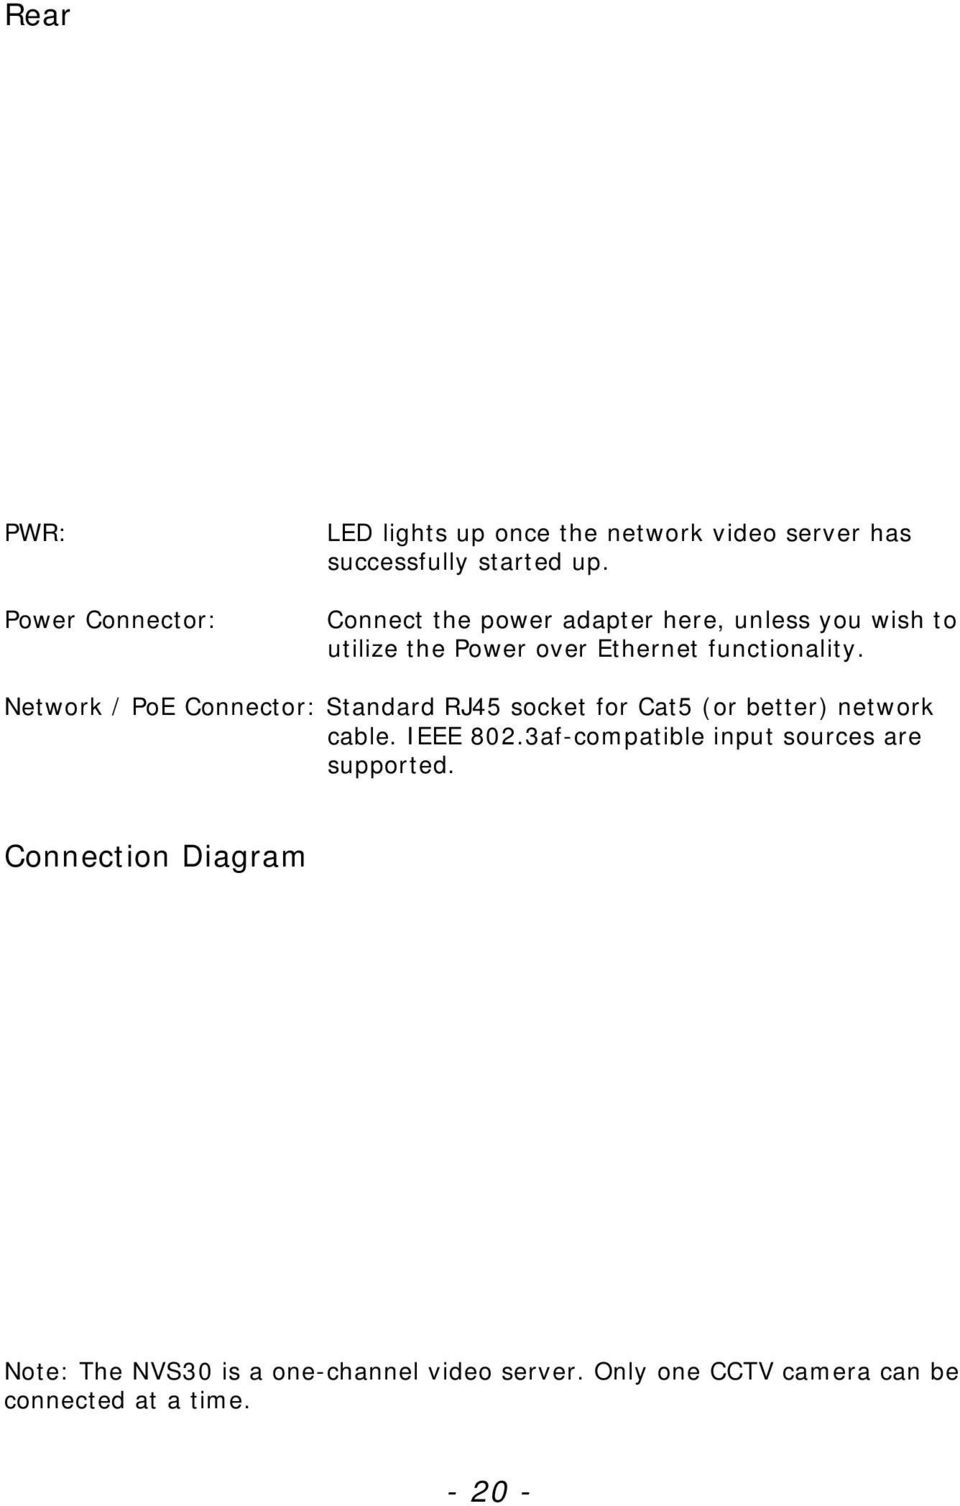 hight resolution of network poe connector standard rj45 socket for cat5 or better network cable